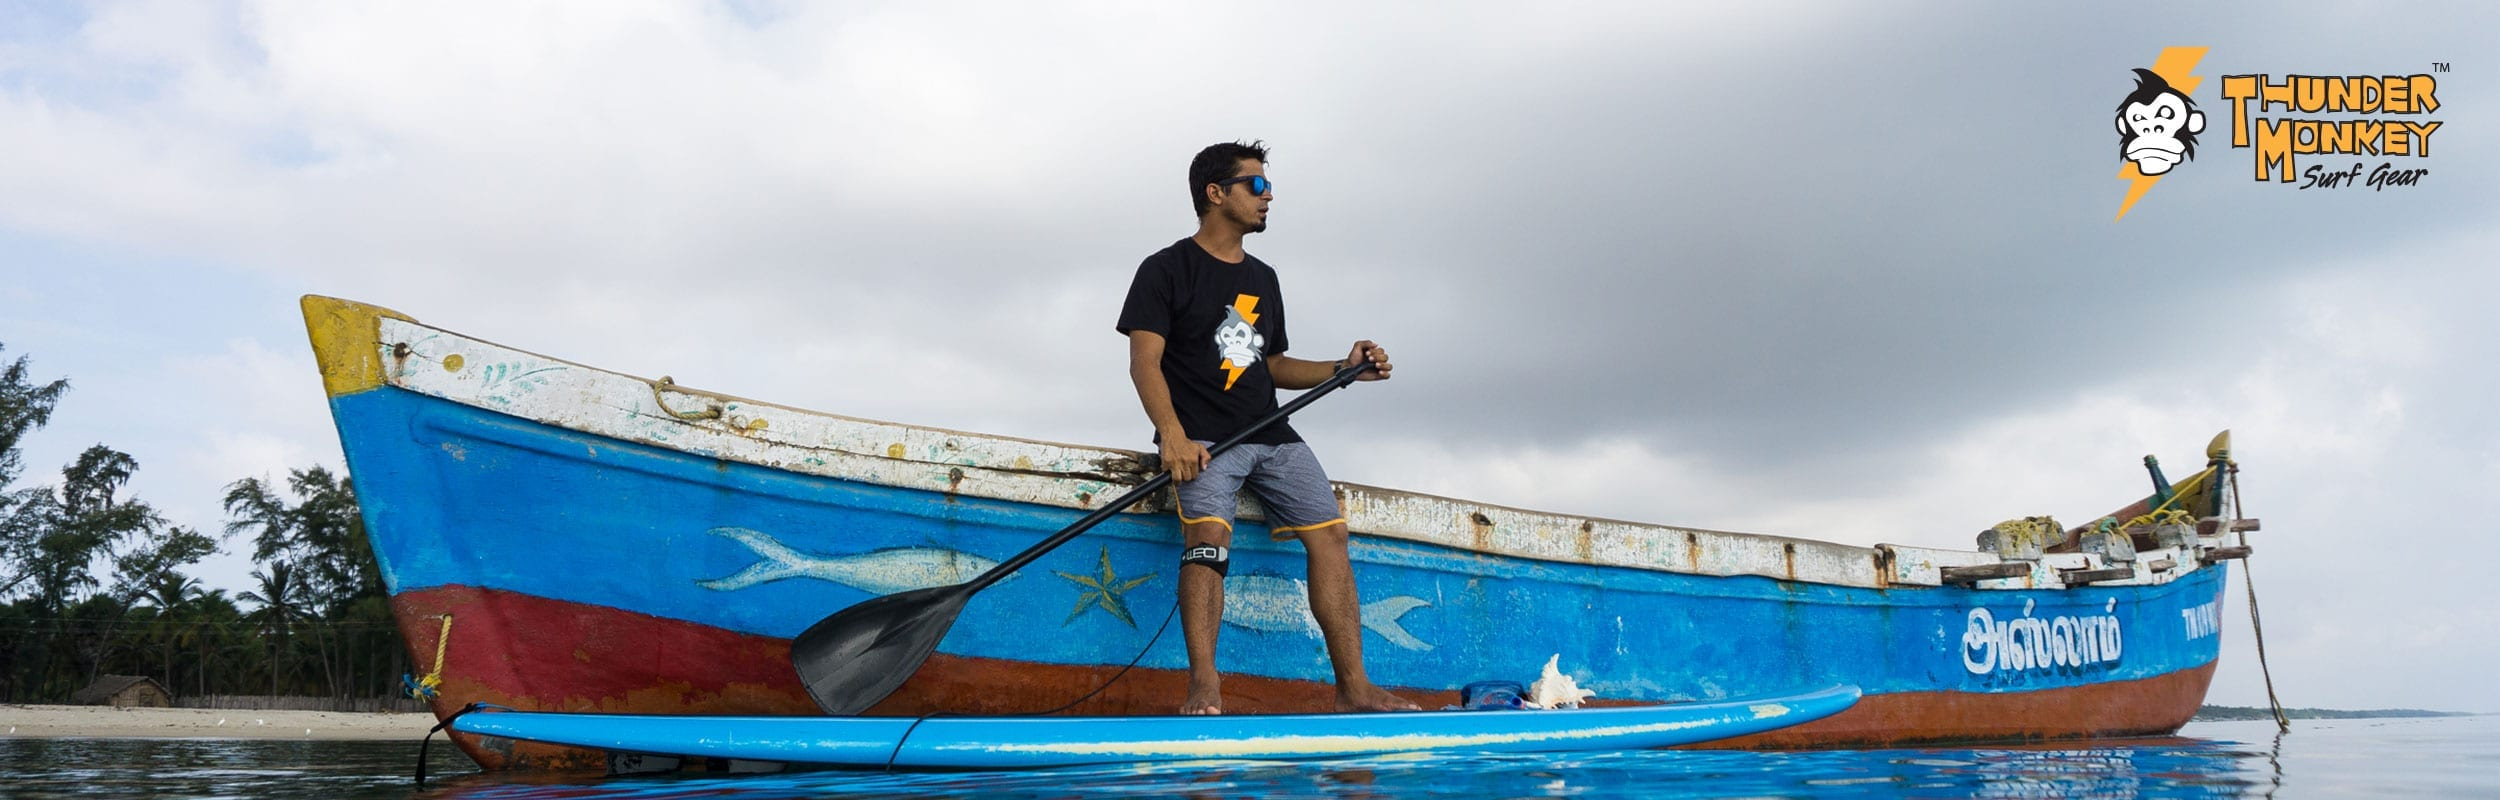 surf shop india - Mantra surf club - surfing india